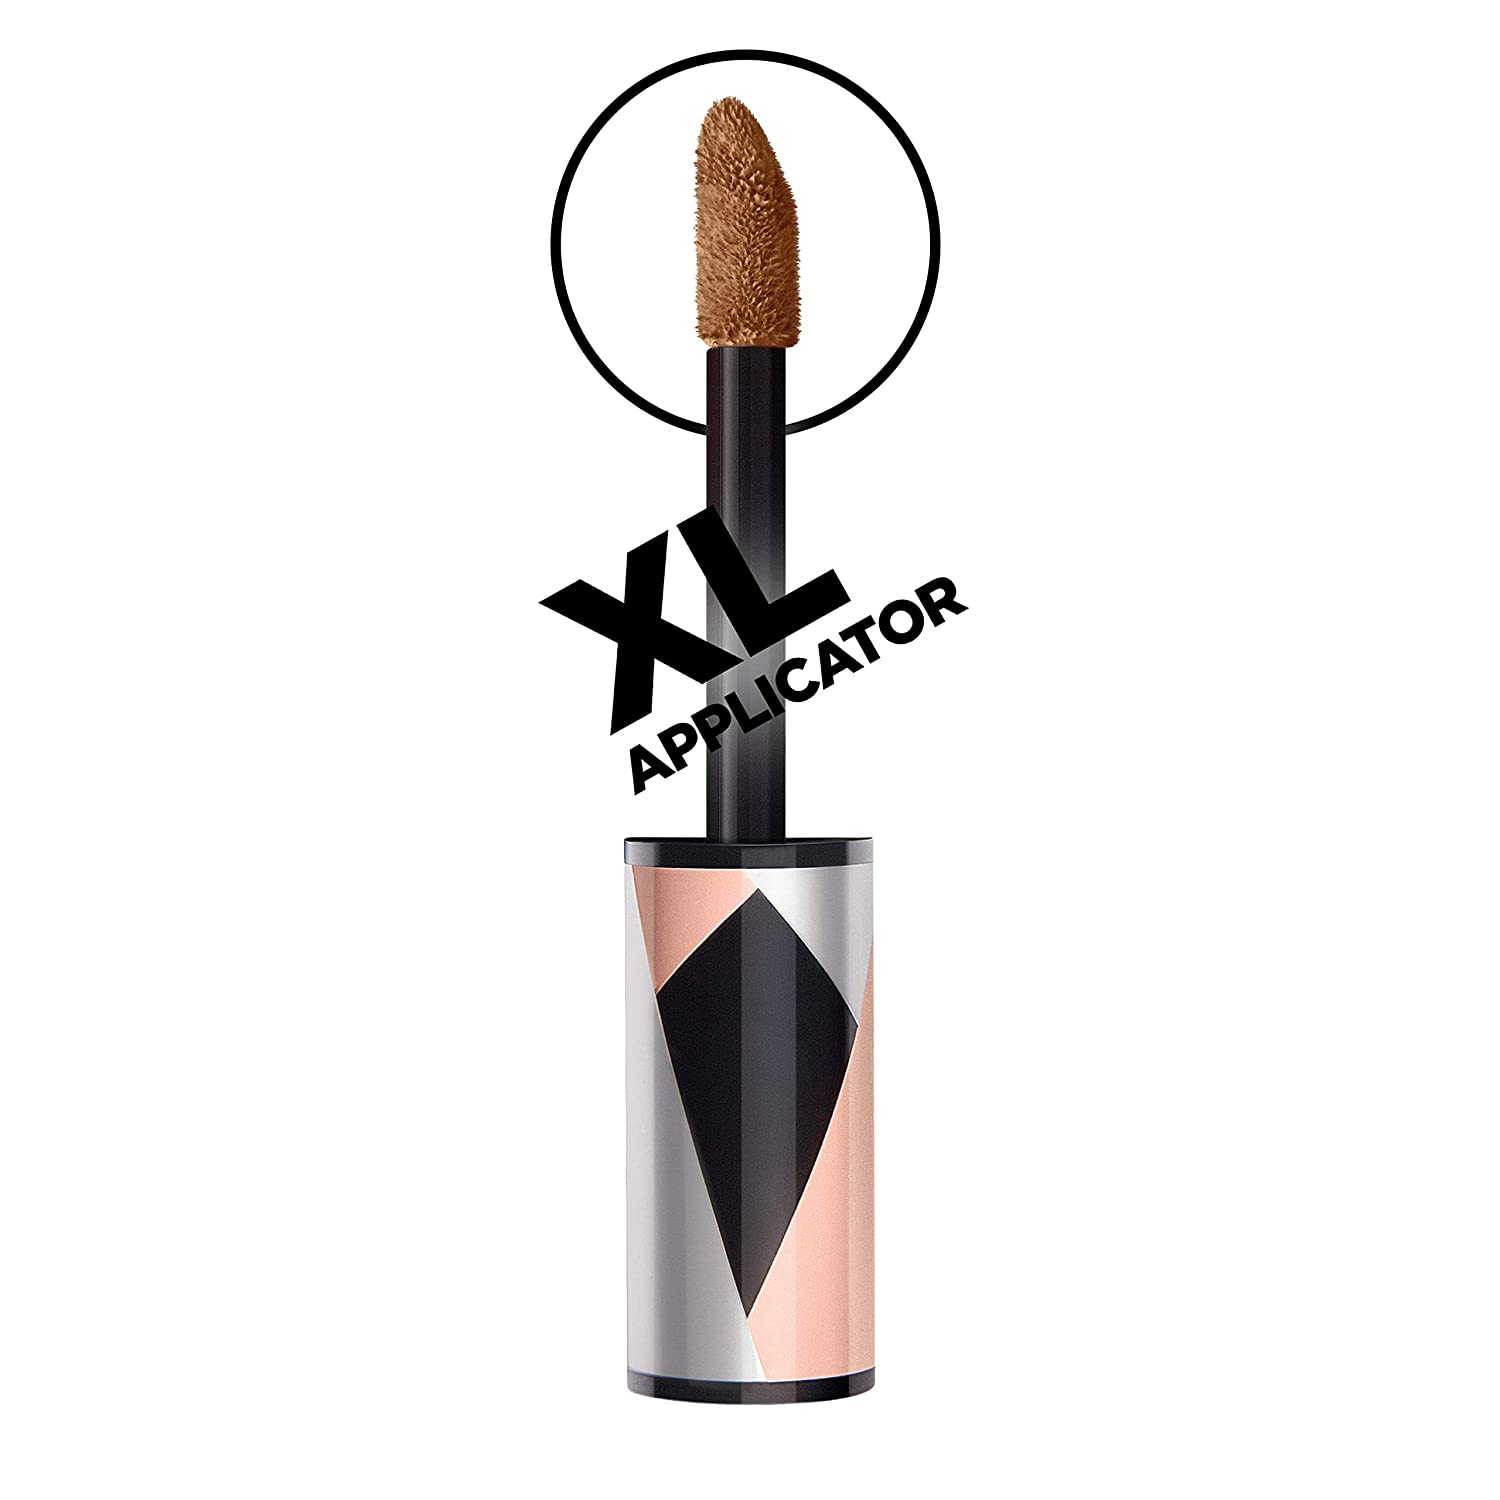 L'Oreal Paris Makeup Infallible Full Wear Waterproof Matte Concealer, Cashmere: Beauty